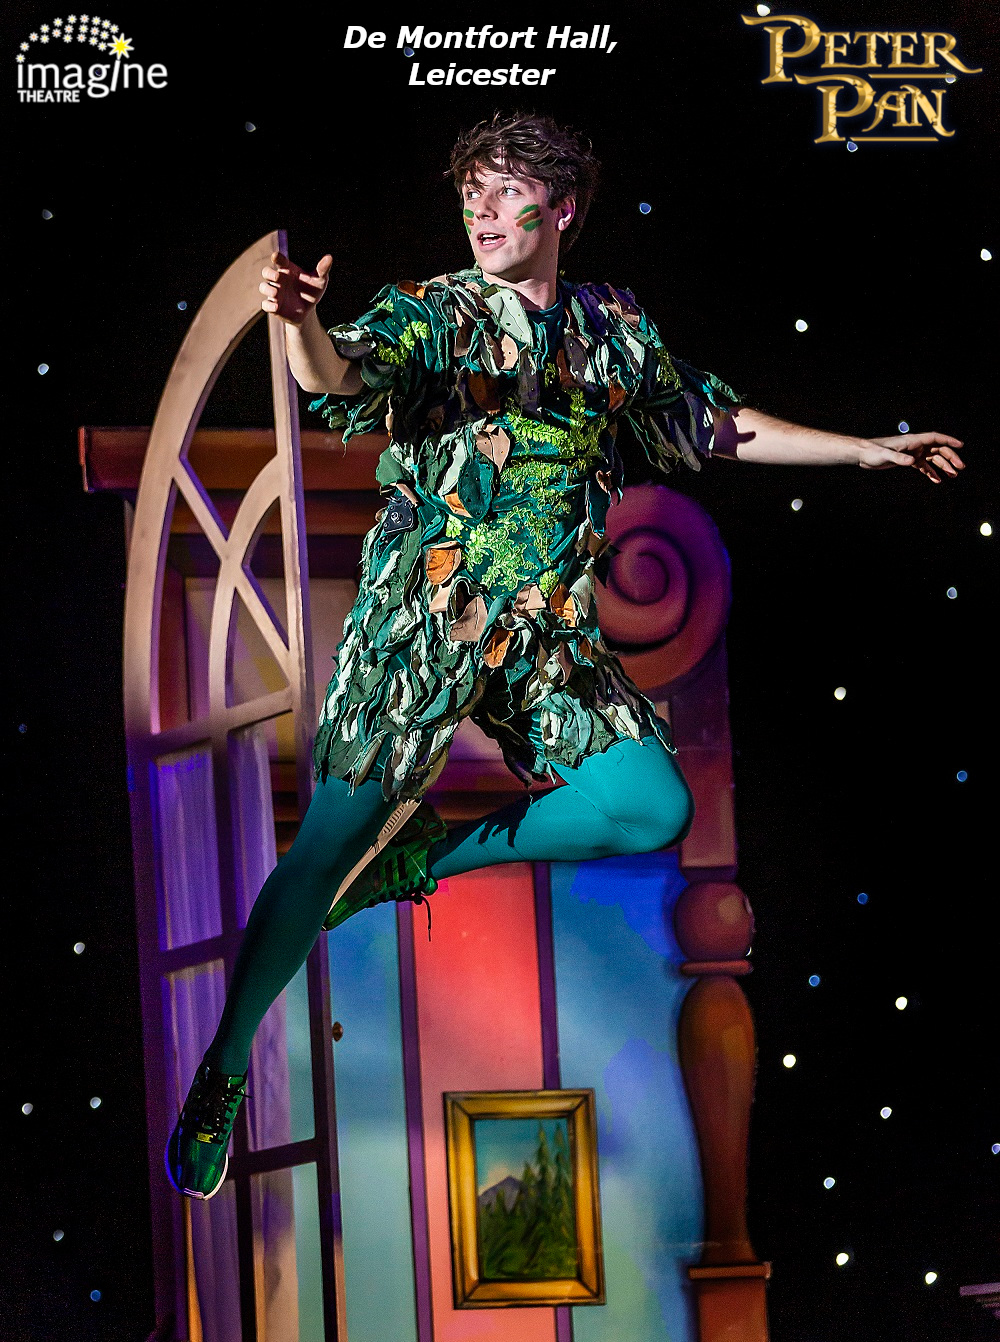 010_DMH Peter Pan_Pamela Raith Photography.jpg